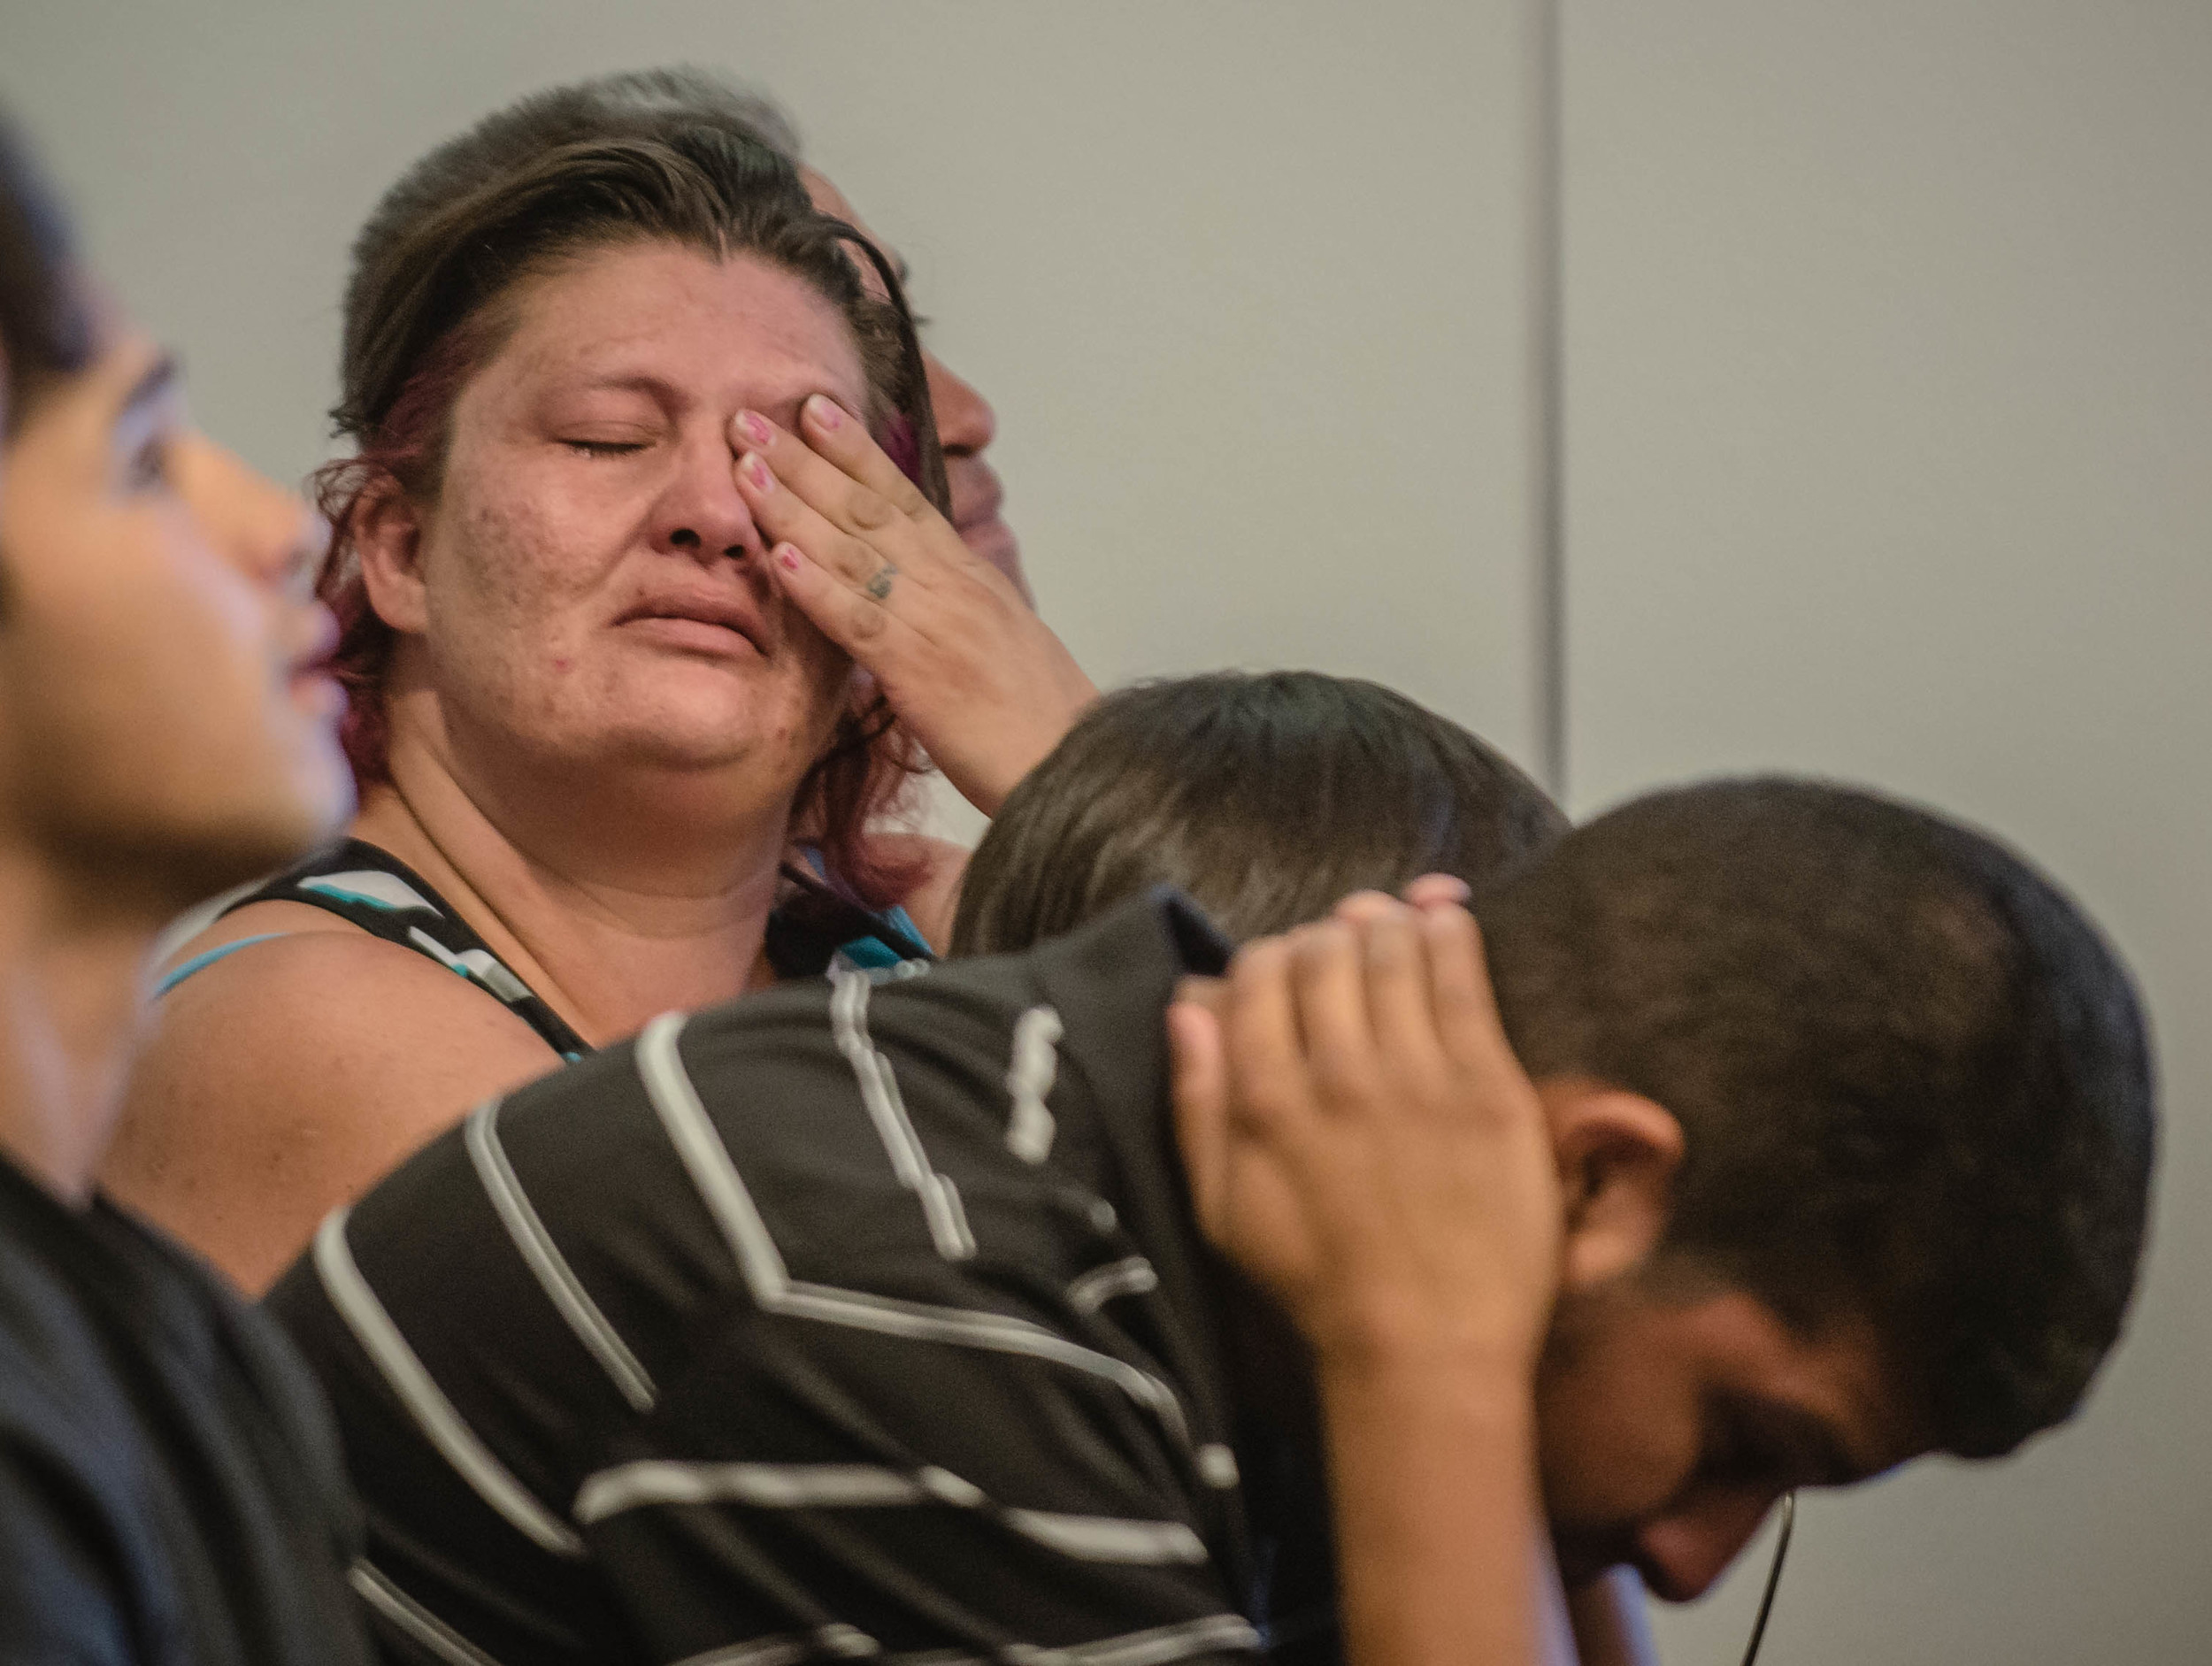 Family members of the teens accused react to hearing the bonds set at 5 million dollars.